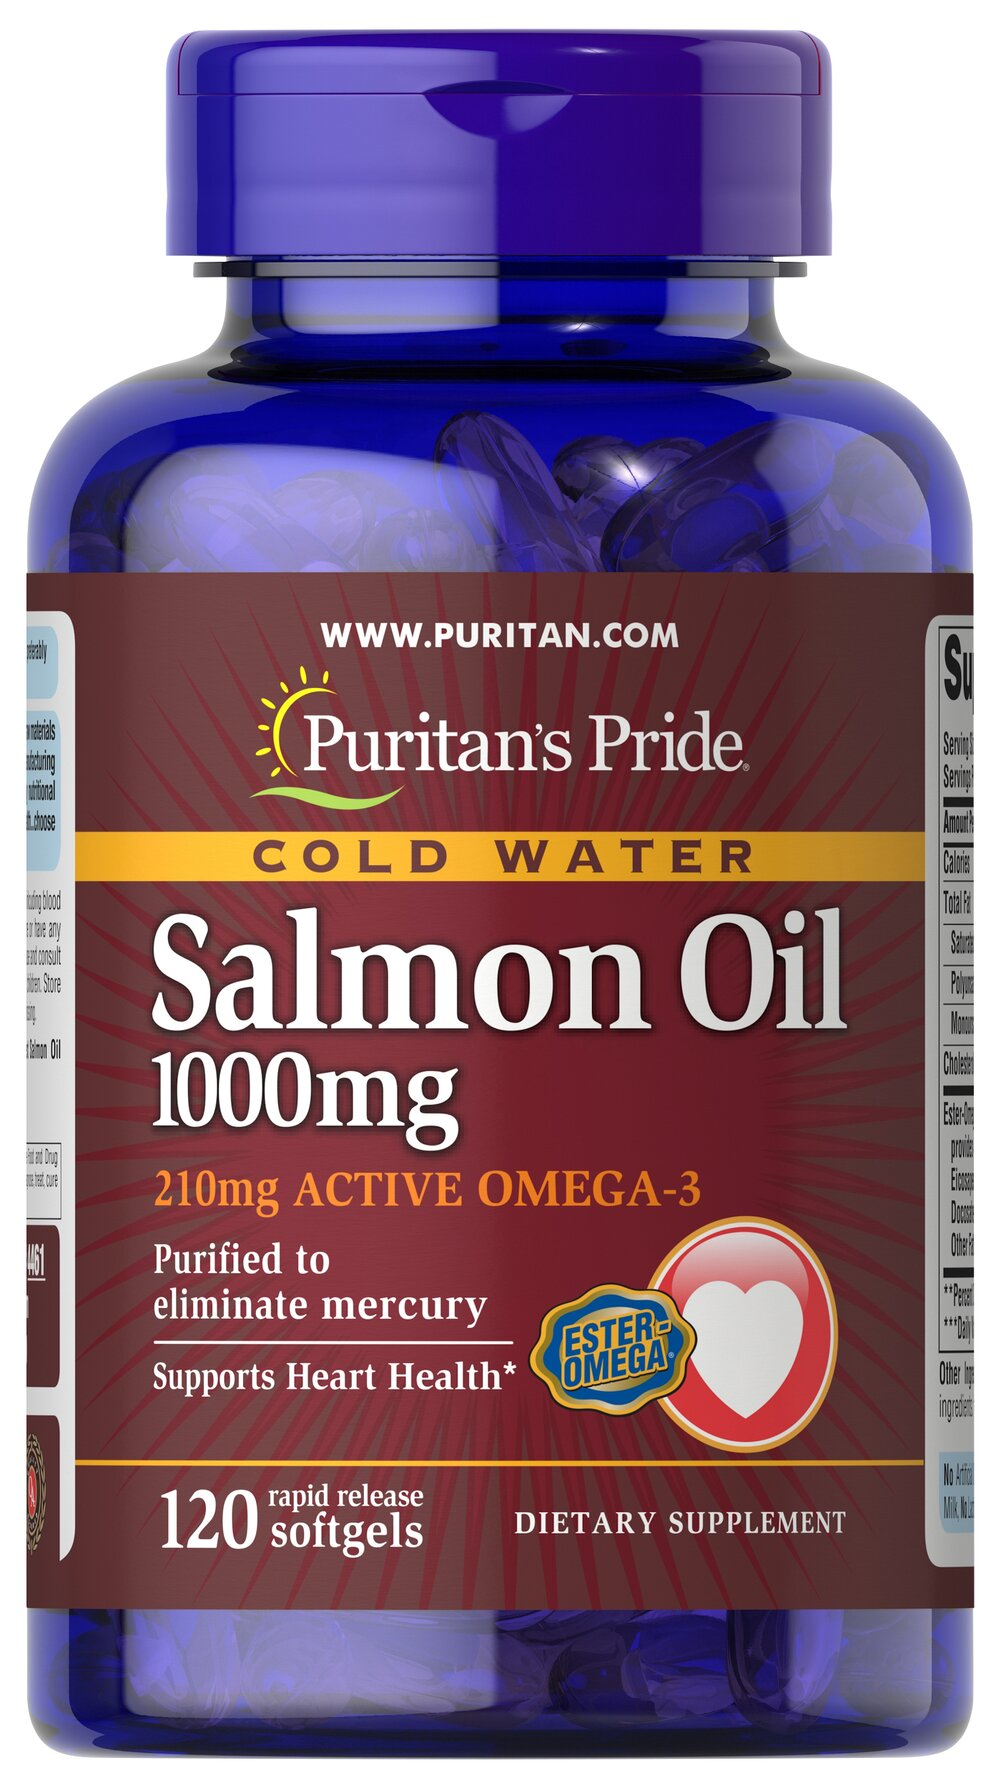 Omega-3 Salmon Oil 1000 mg (210 mg Active Omega-3) <p><strong>Purified to Eliminate Mercury</strong></p><p>Puritan's Pride Salmon Oil contains the finest Salmon Oil available. Take two softgels two times a day to gain the essential fatty acids your body needs for good health.** Salmon contains a high concentration of Omega-3 fatty acids that have been shown to help promote metabolic, circulatory and heart health.**</p> 120 Softgels 1000 mg $19.99